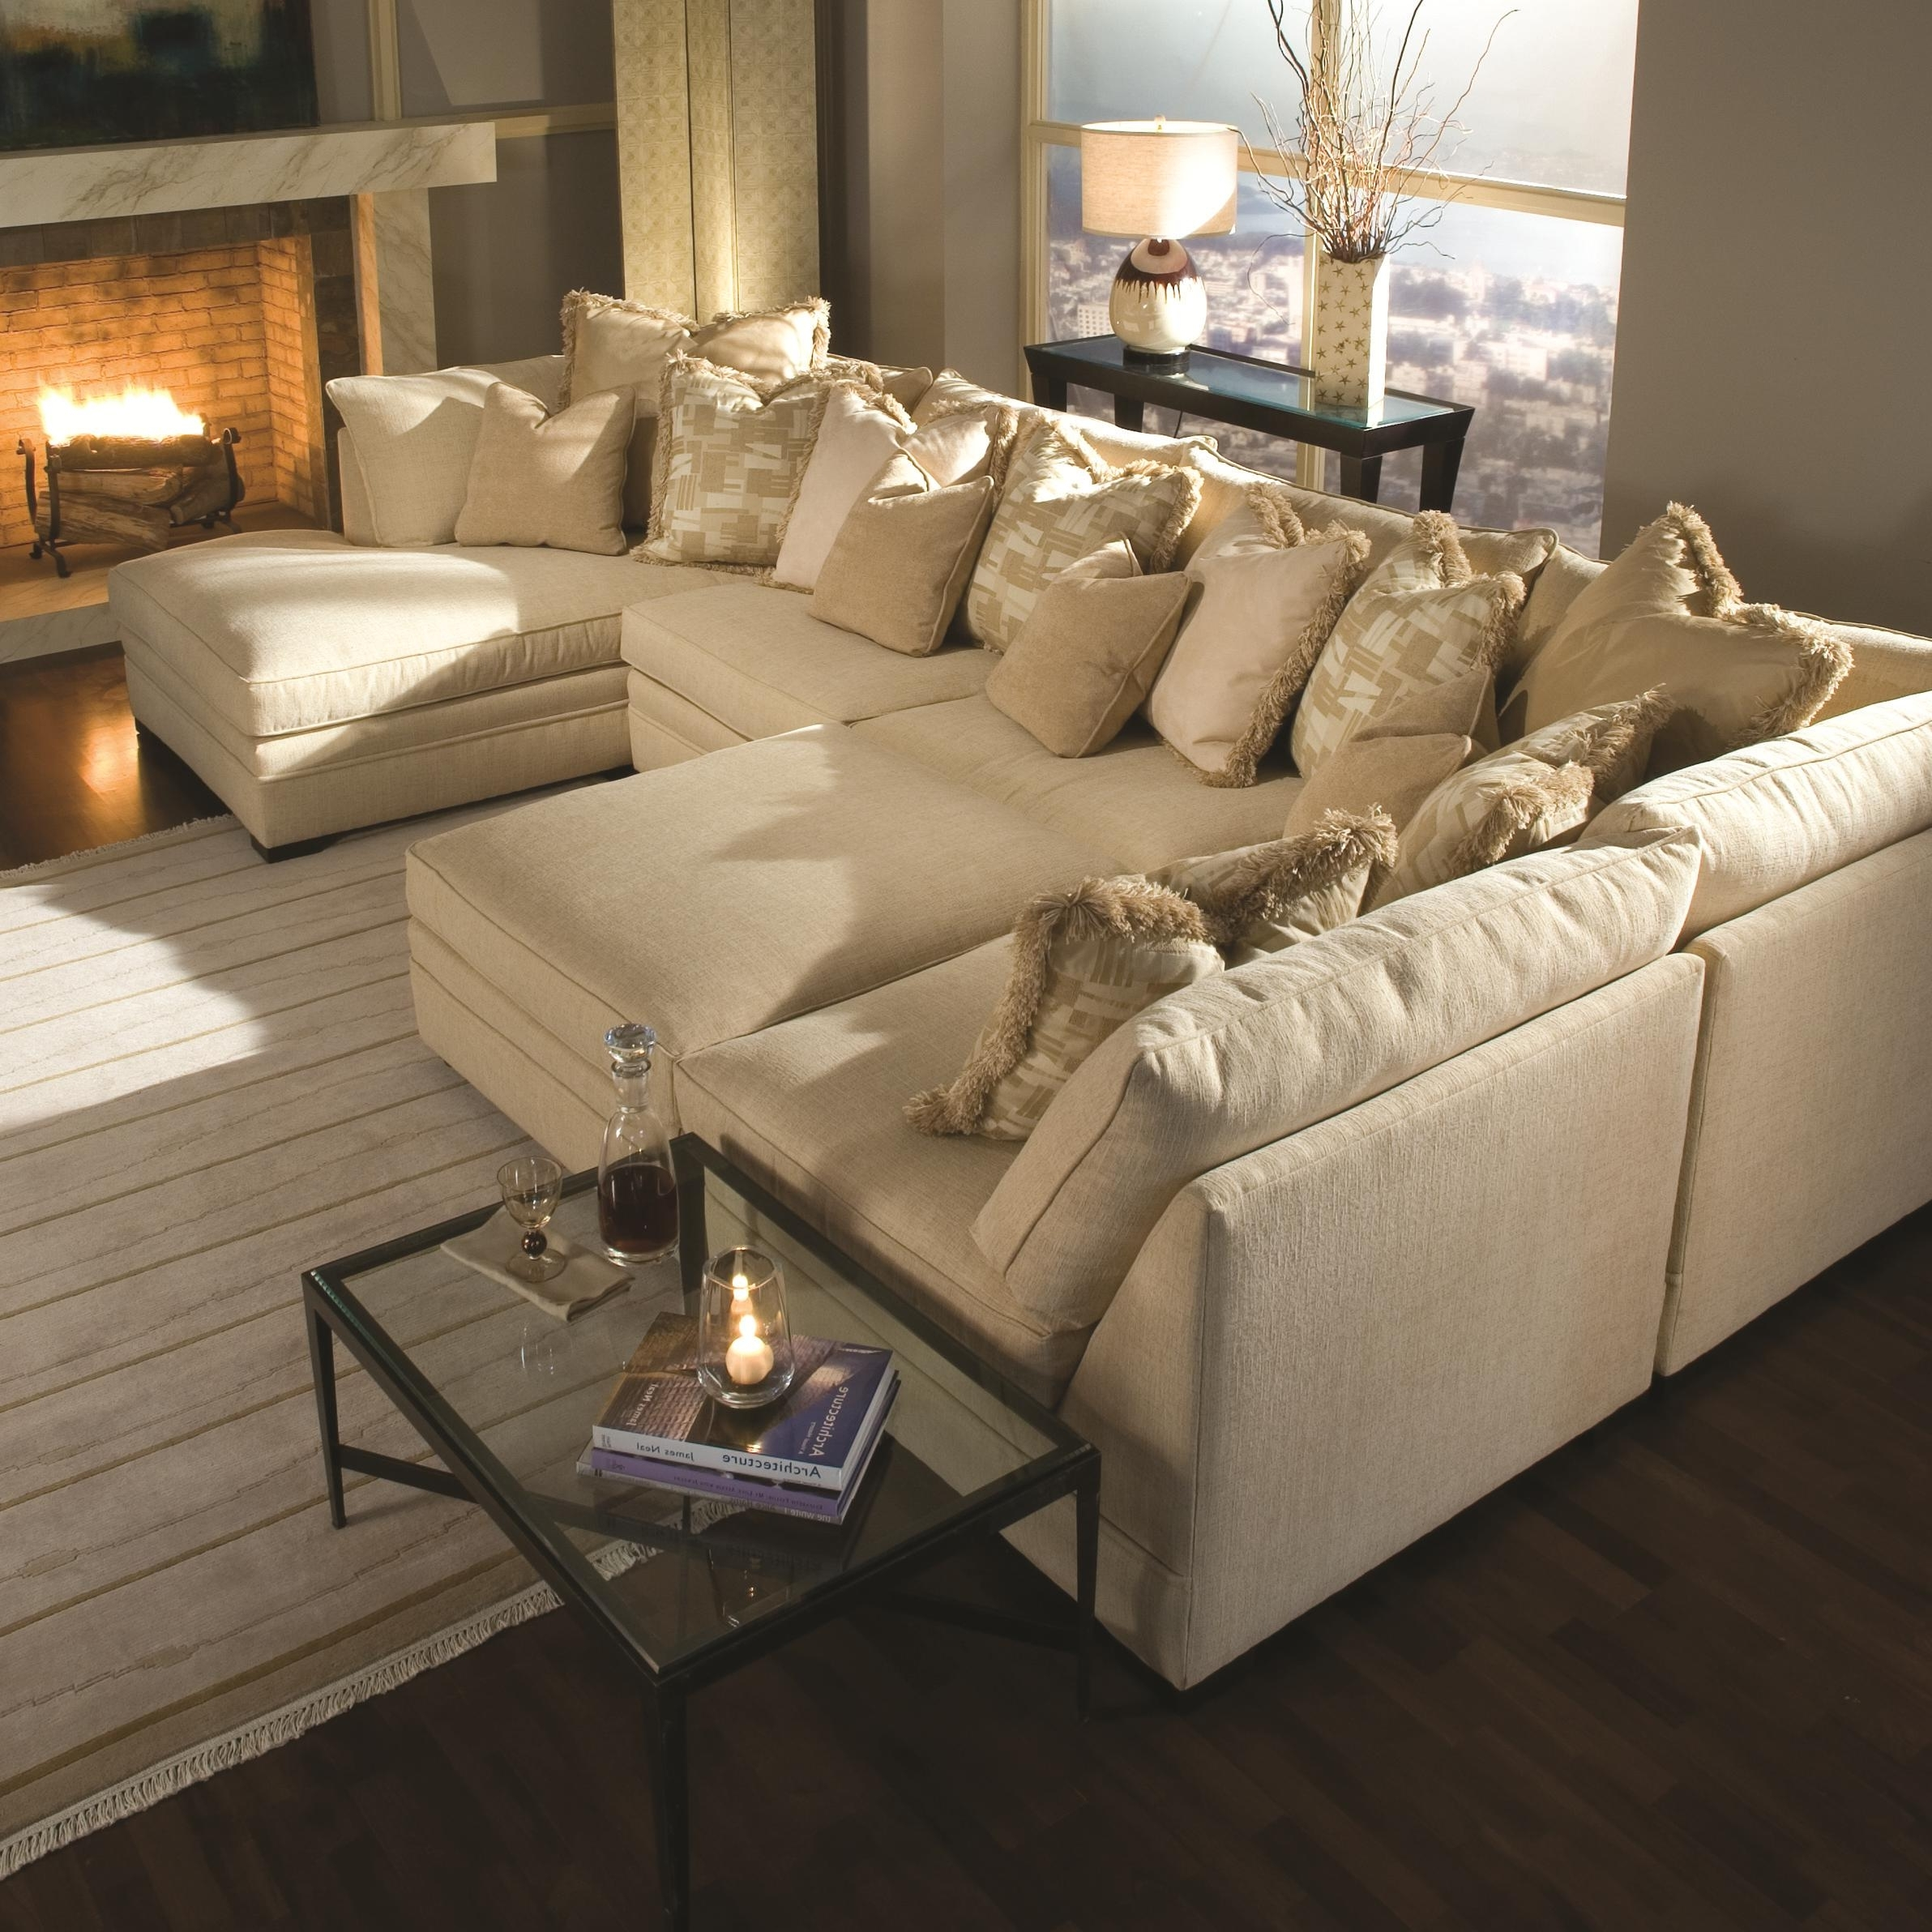 Current Sofa : Beautiful Large Sectional Sofa With Chaise L Shaped Cream Within Sectional Sofas With Chaise And Ottoman (View 3 of 15)